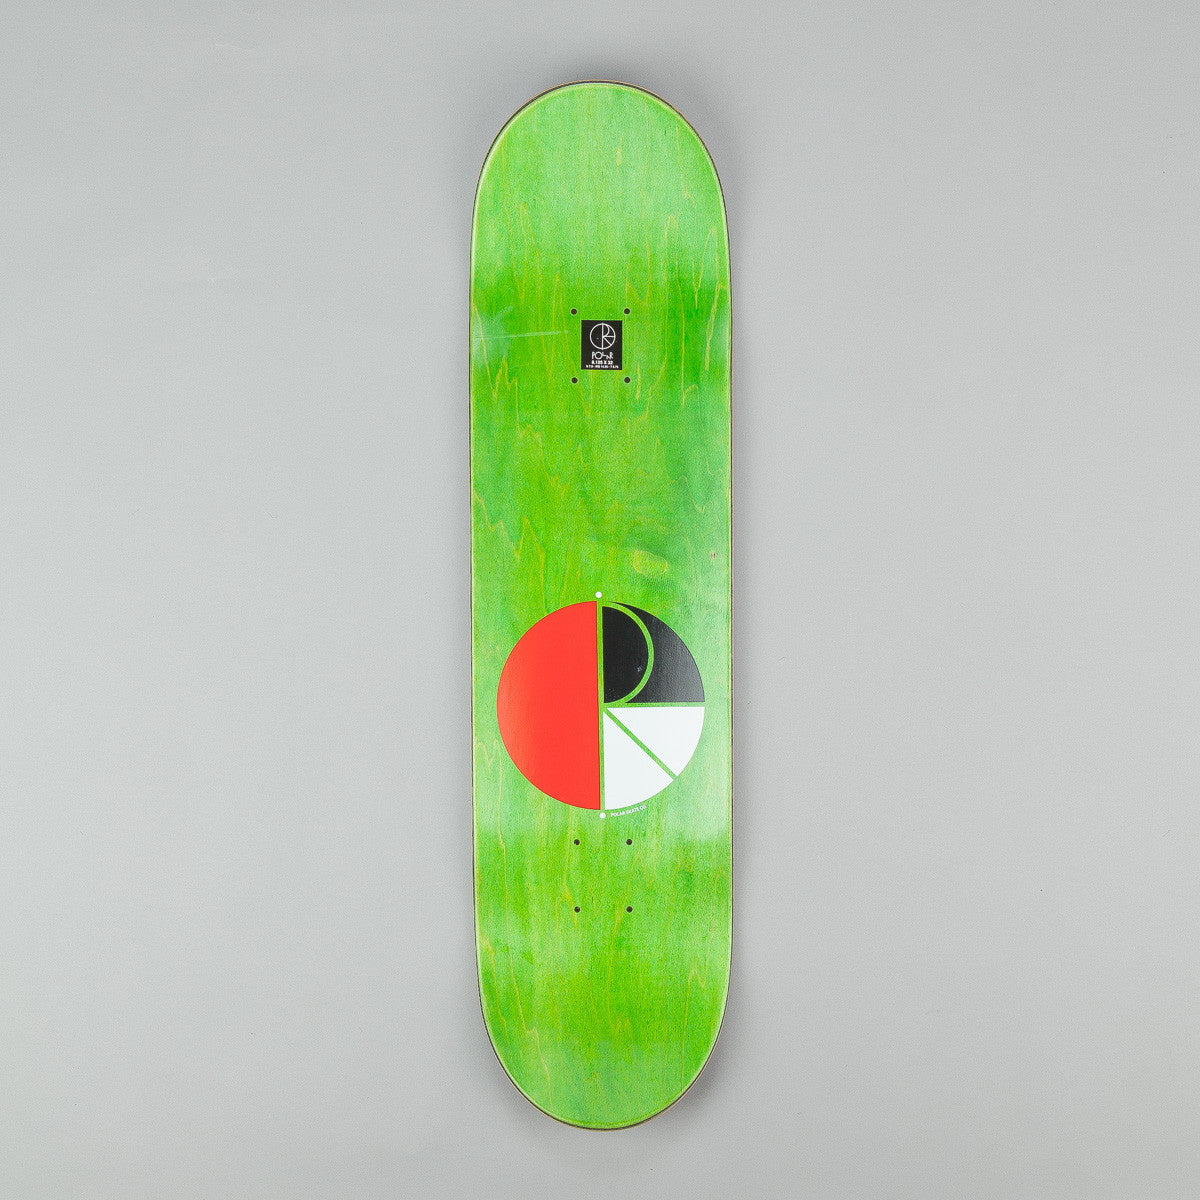 Polar KZ Photo Booth Deck - White 8.125""